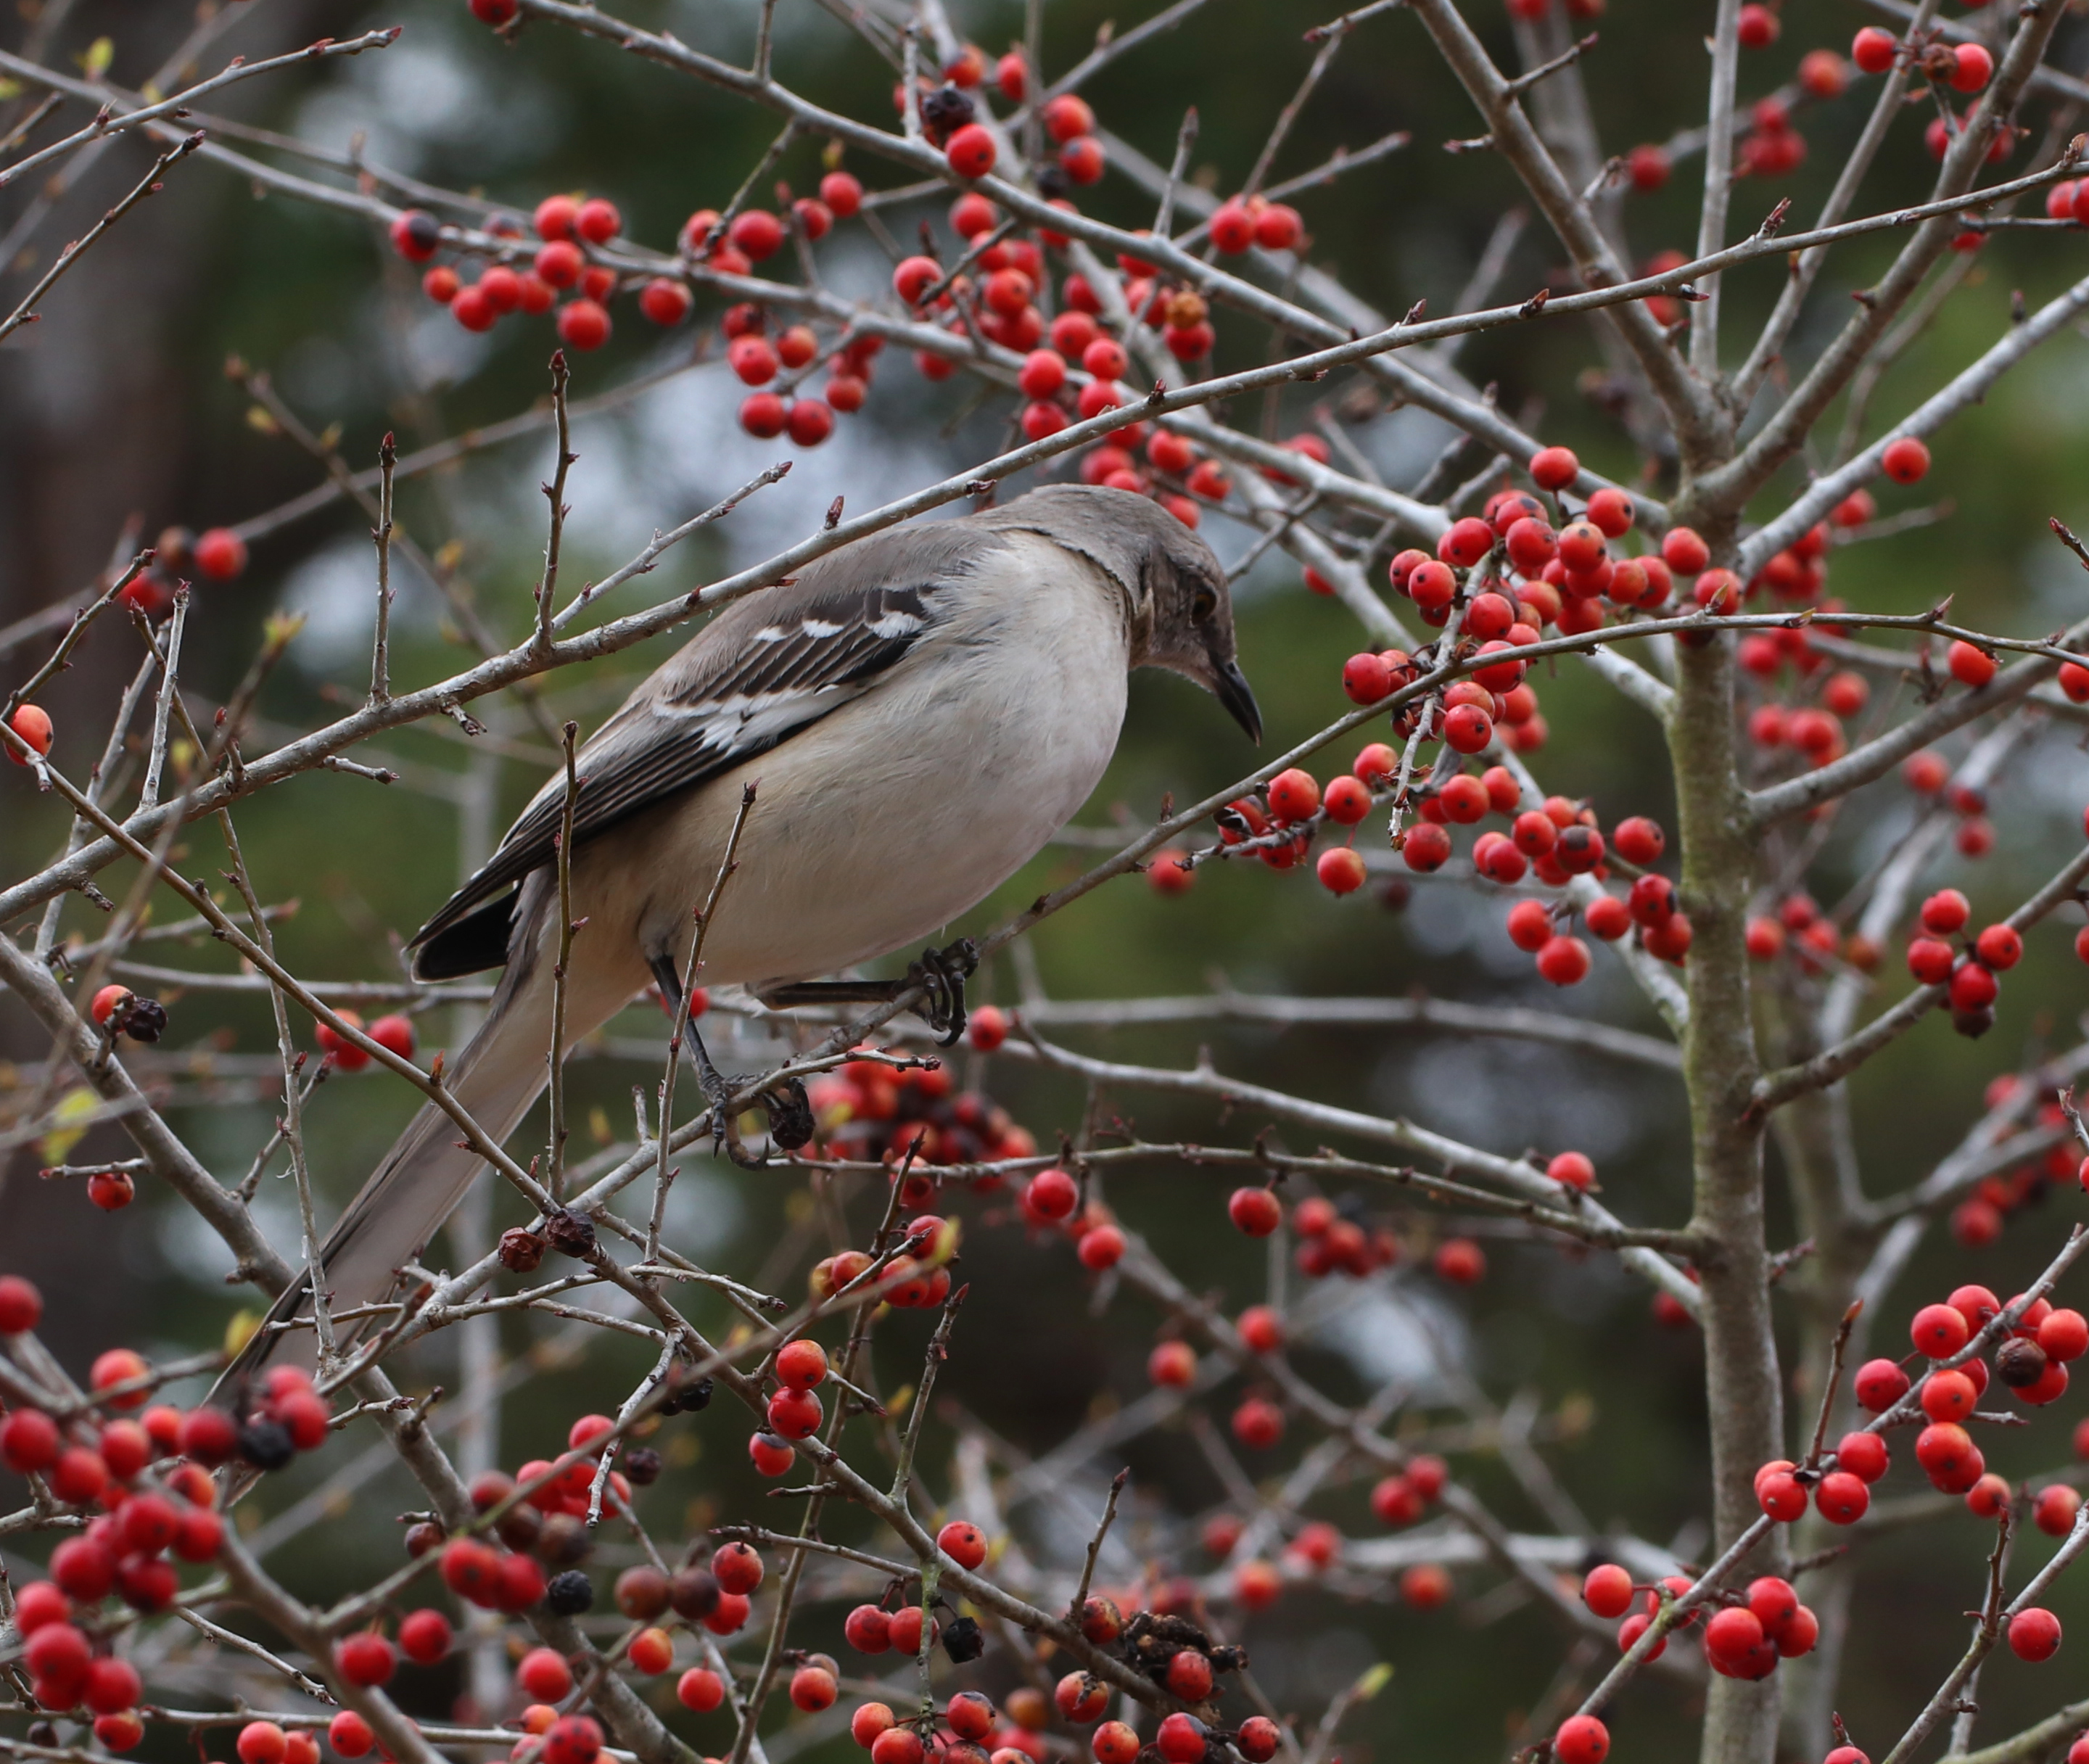 Mockingbird snacking on possumhaw berries in early spring.